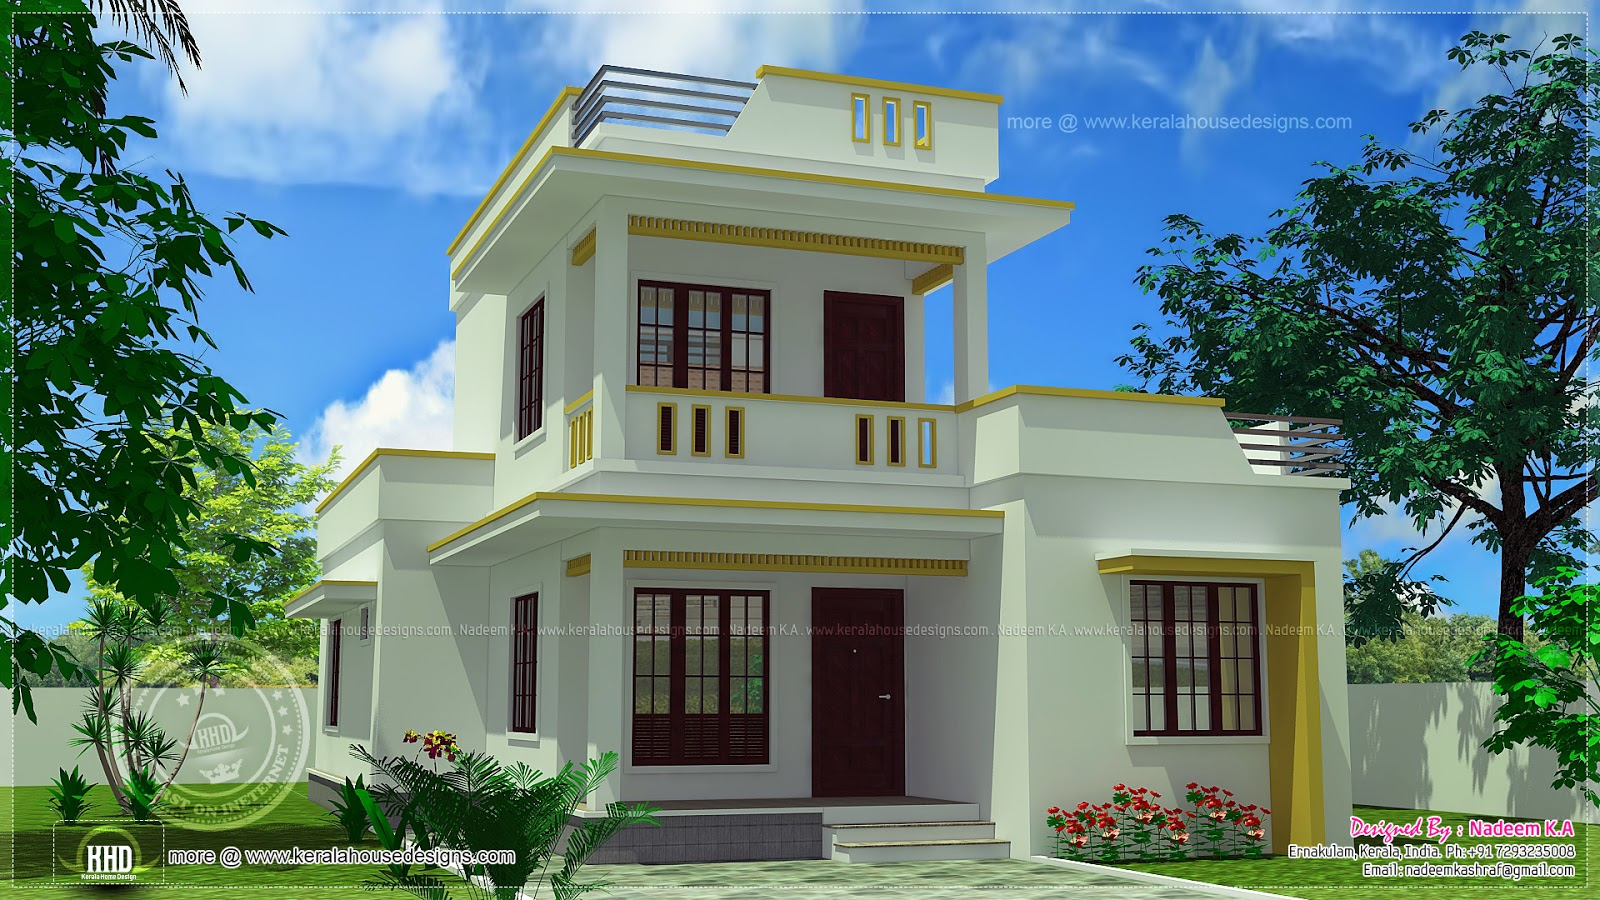 simple home design - Home Design Photos